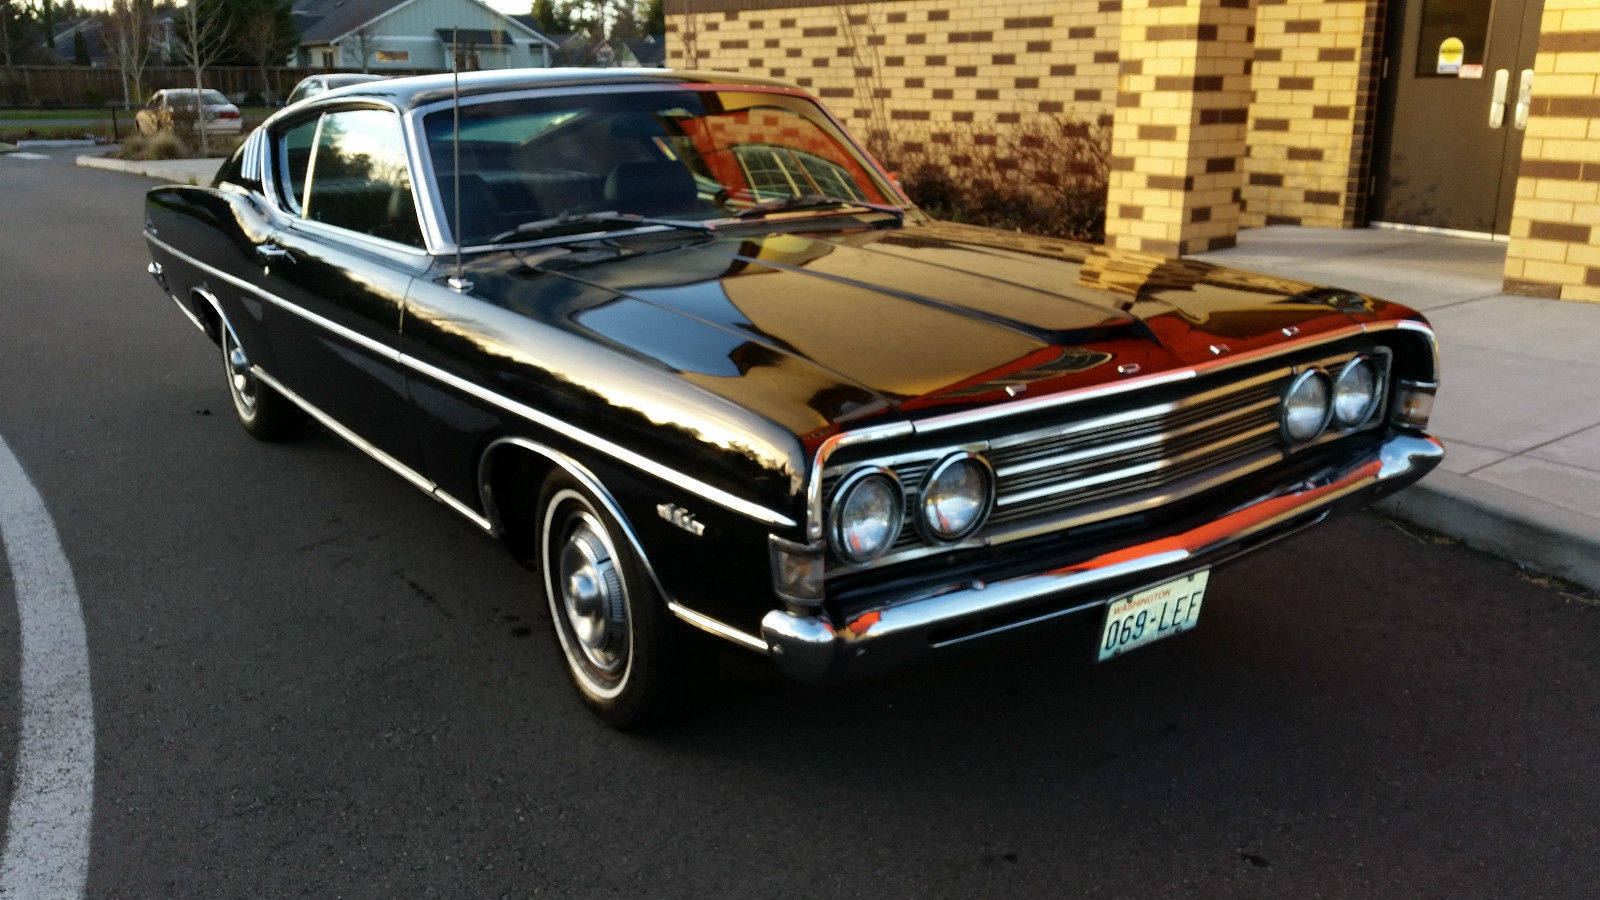 1969 ford fairlane 500 fastback 351 auto must see worldwide no reserve classic ford fairlane. Black Bedroom Furniture Sets. Home Design Ideas